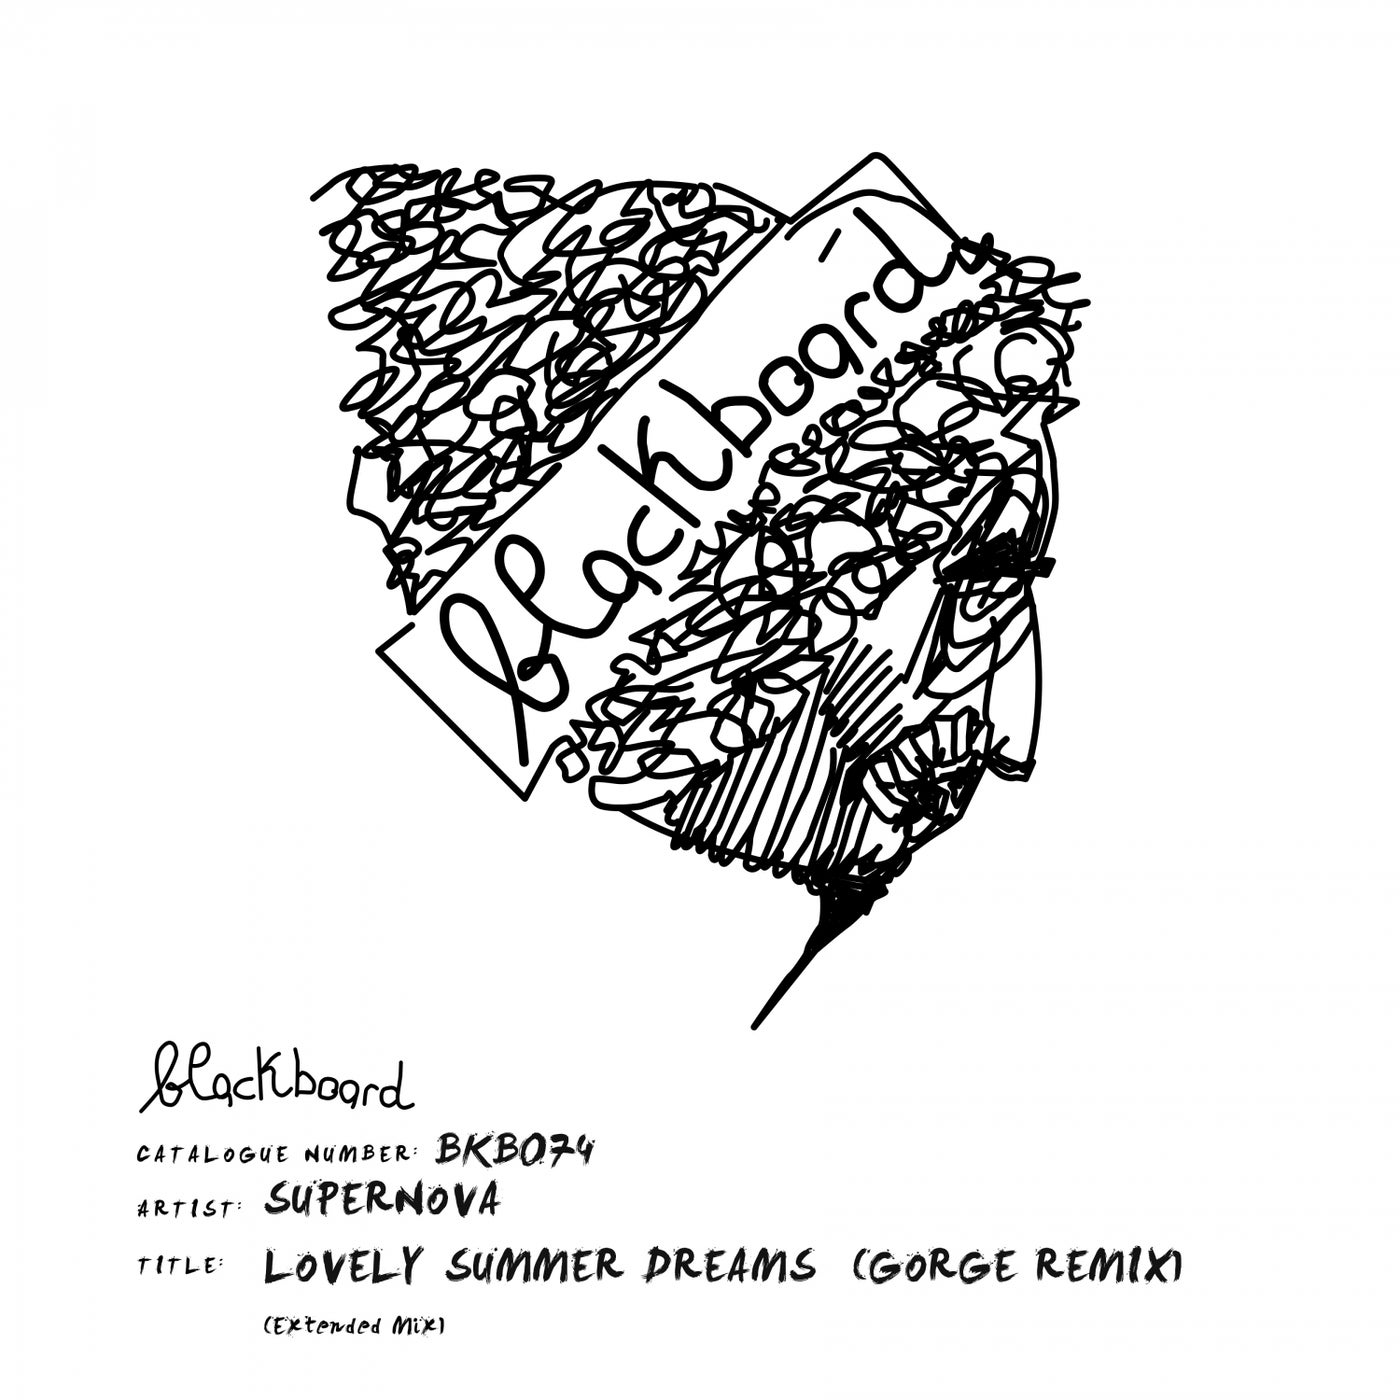 Lovely Summer Dreams (Gorge Extended Remix)